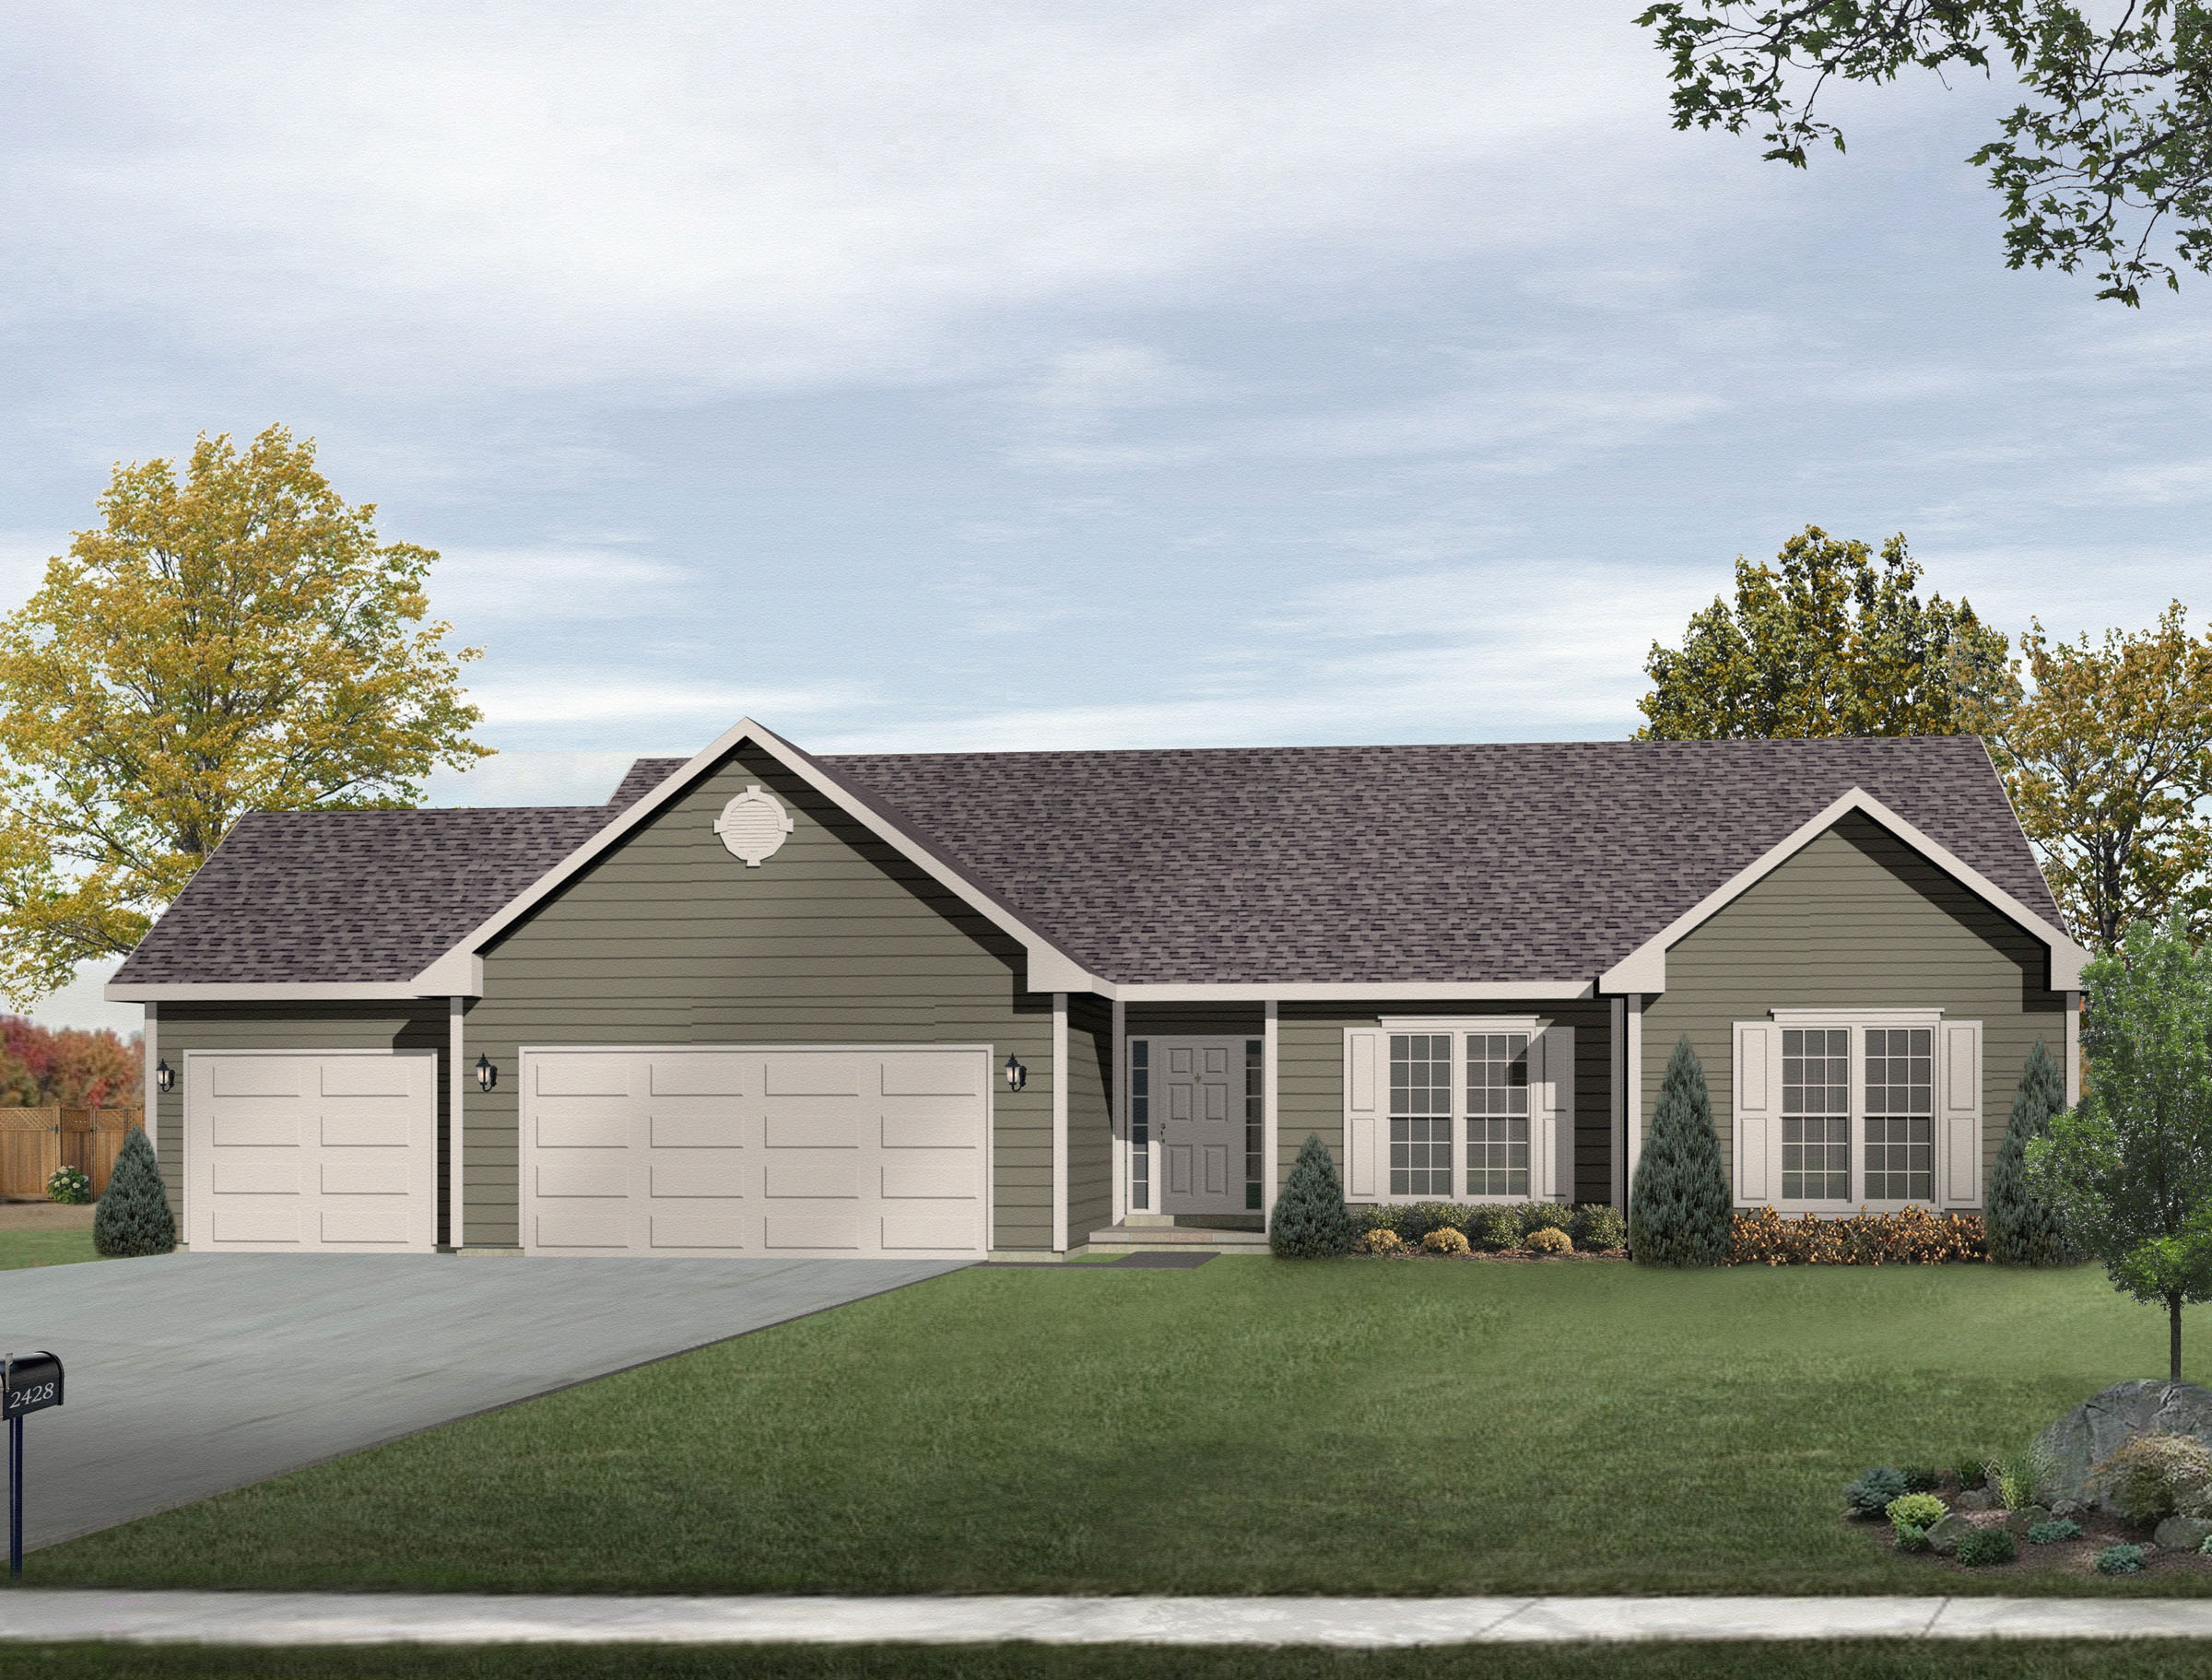 Ranch living with three car garage 2292sl for Ranch house plans with garage